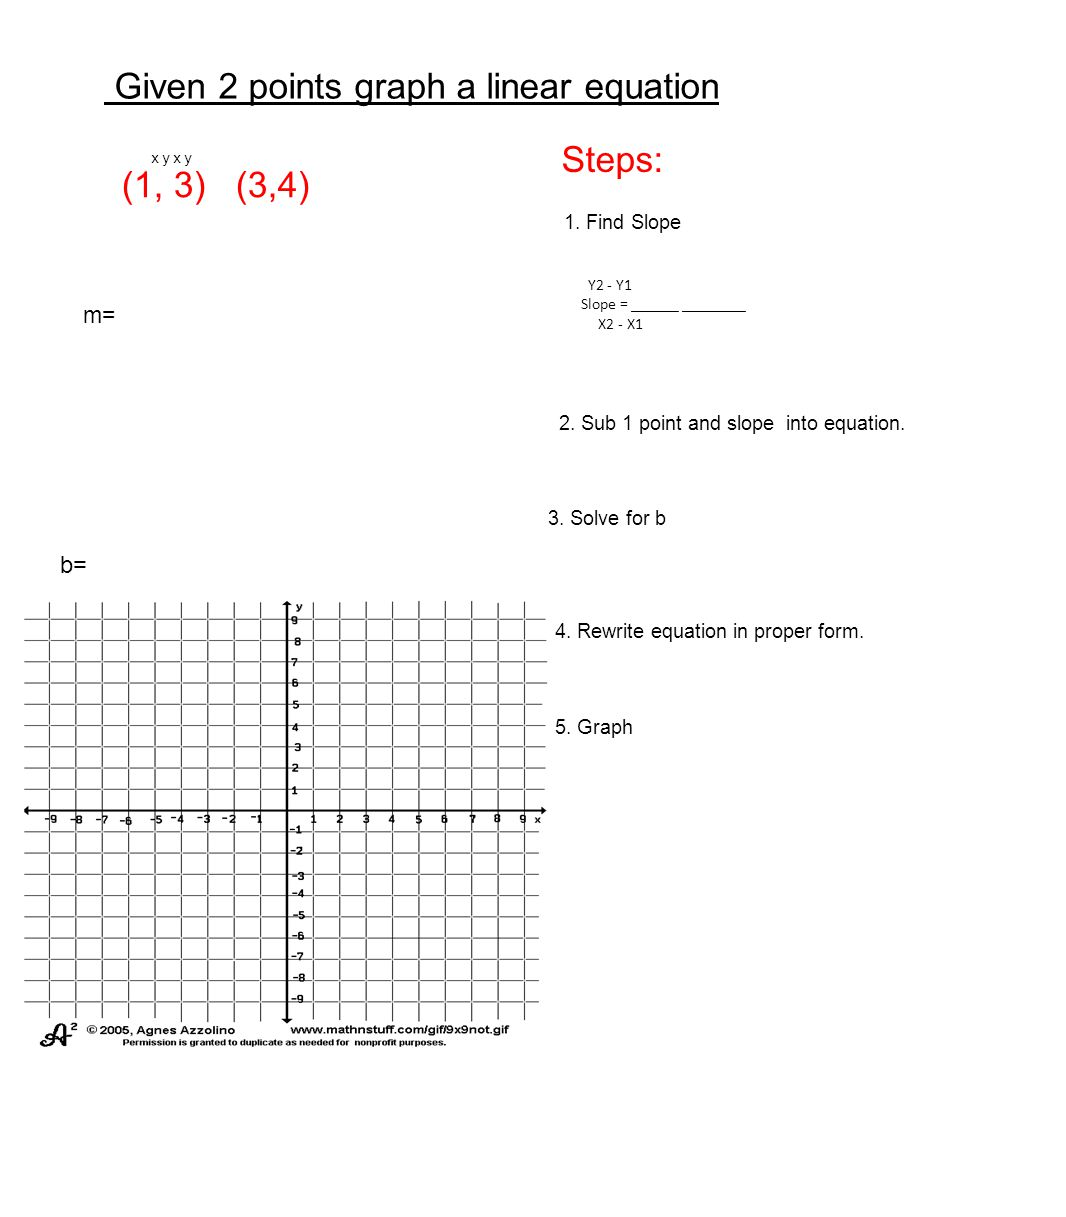 Given 2 points graph a linear equation